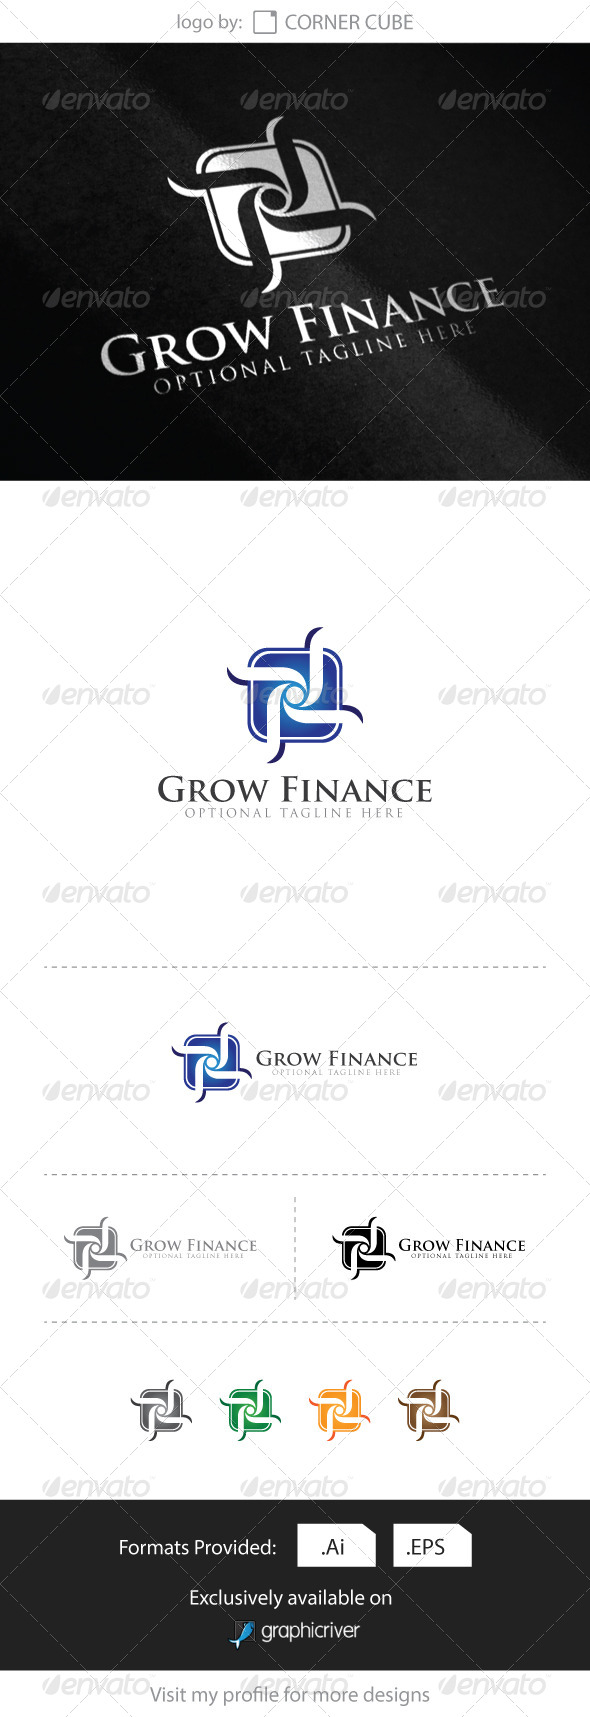 GraphicRiver Grow Financial Logo 8616993